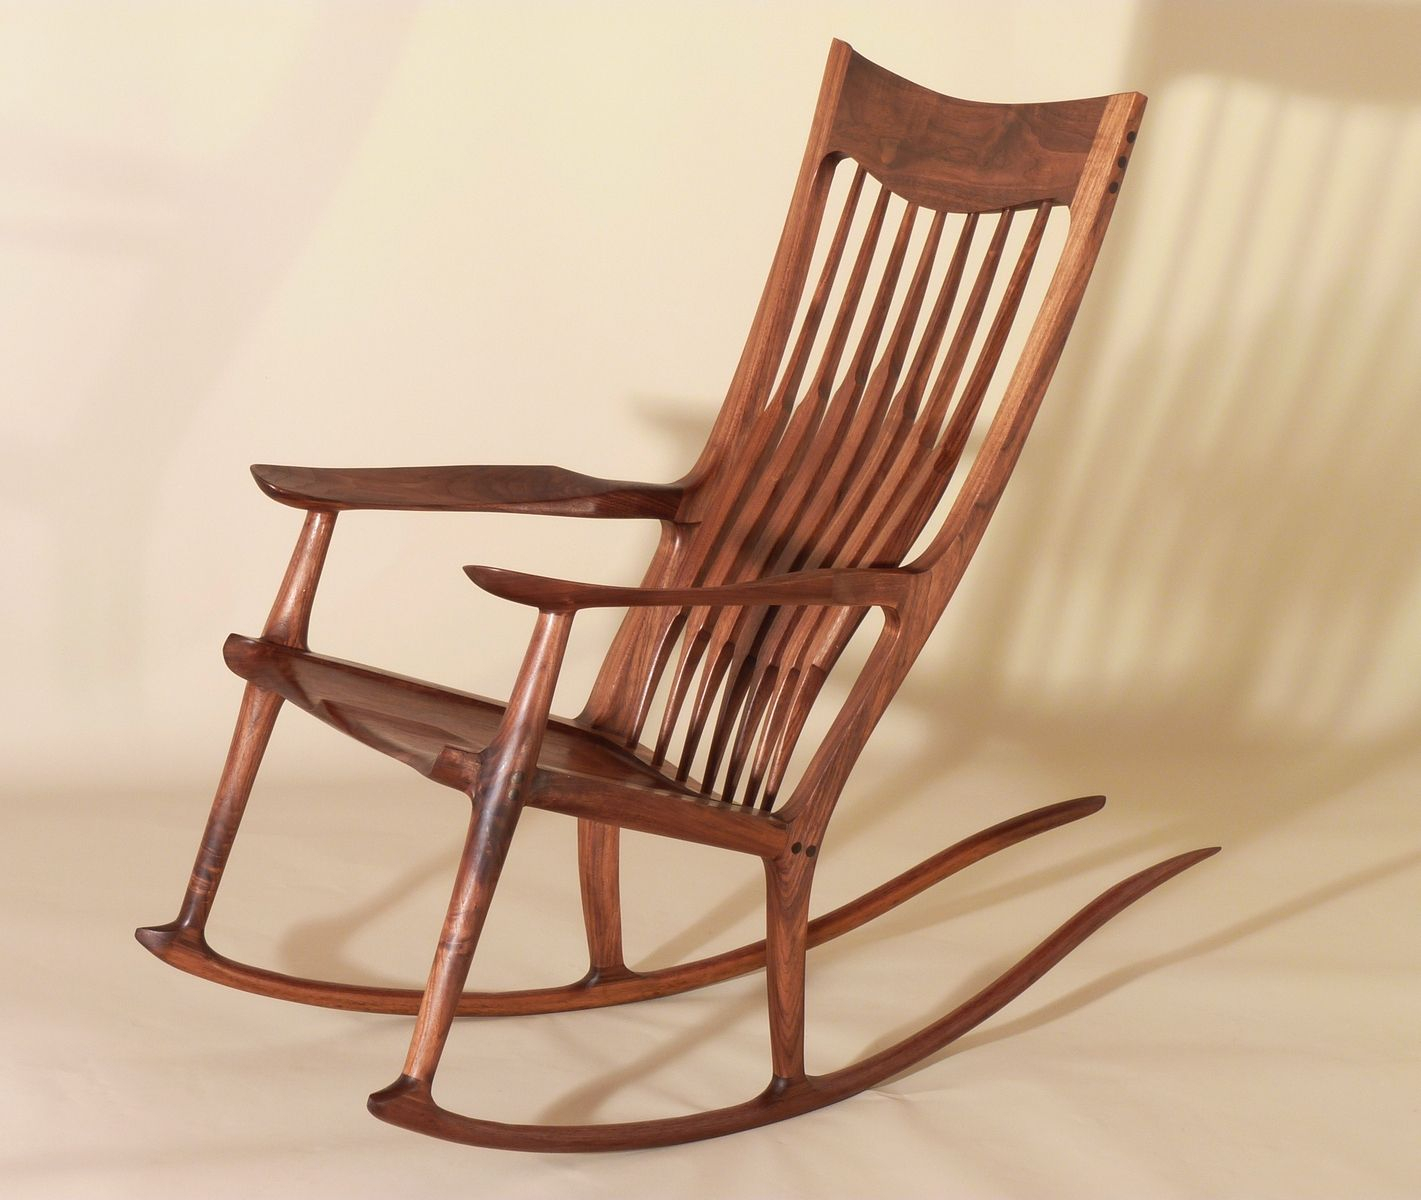 Mission Style Rocking Chair: History And Designs | Homesfeed Intended For Elegant Tobacco Brown Wooden Rocking Chairs (#11 of 20)